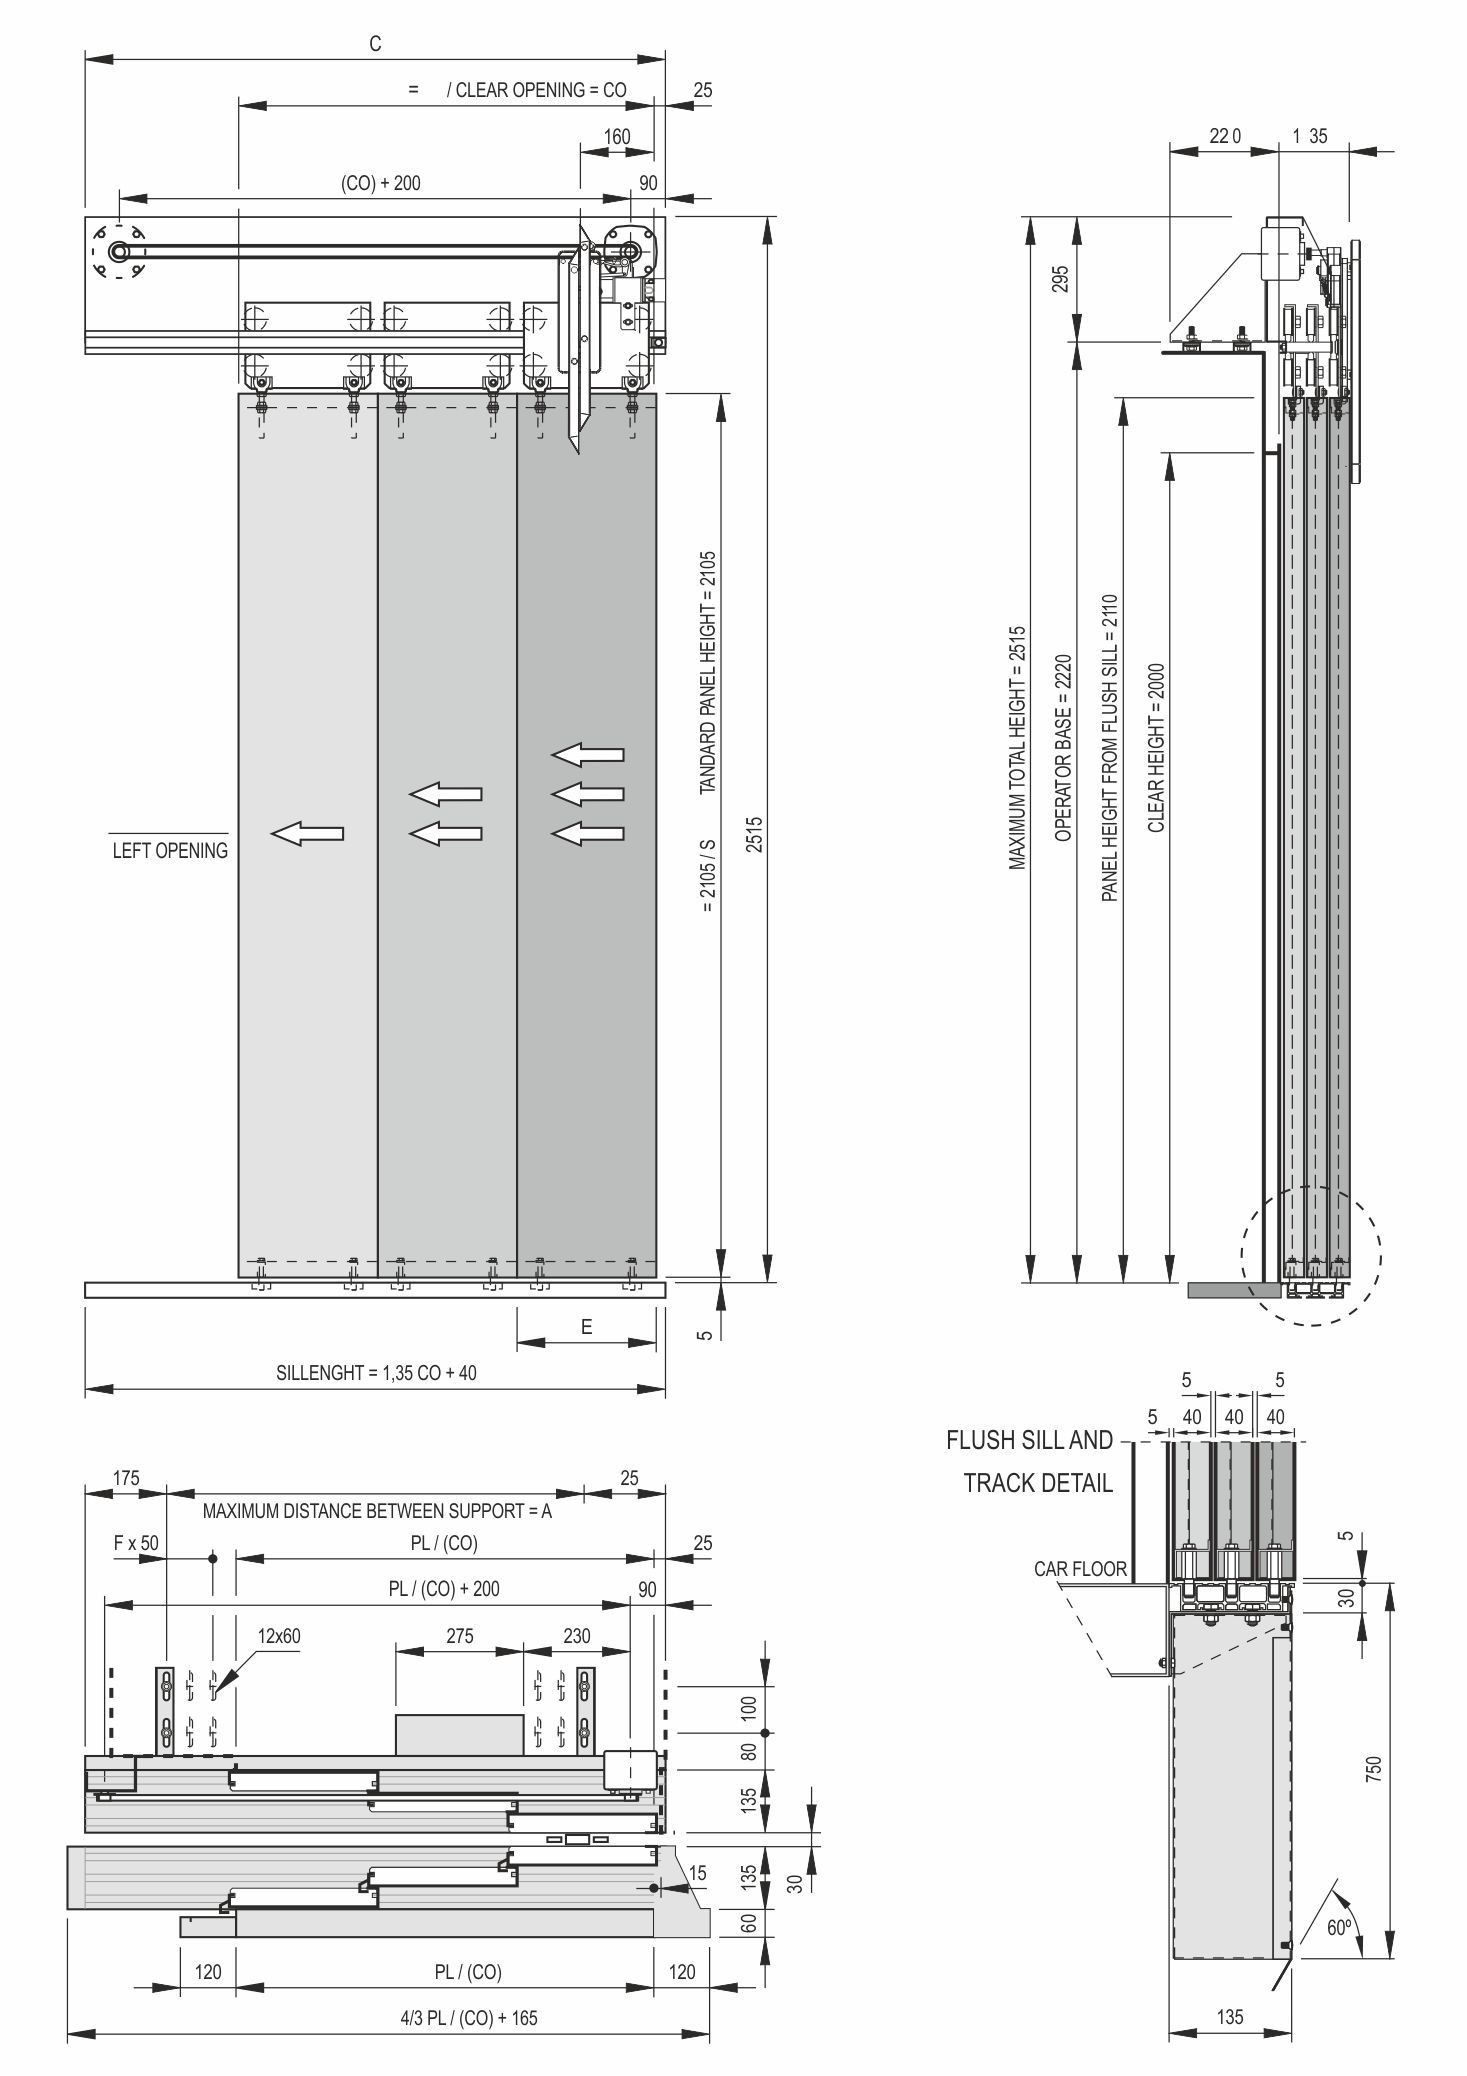 Car Door Schematic 3 Panel Side Opening For Elevators Index Systems Model